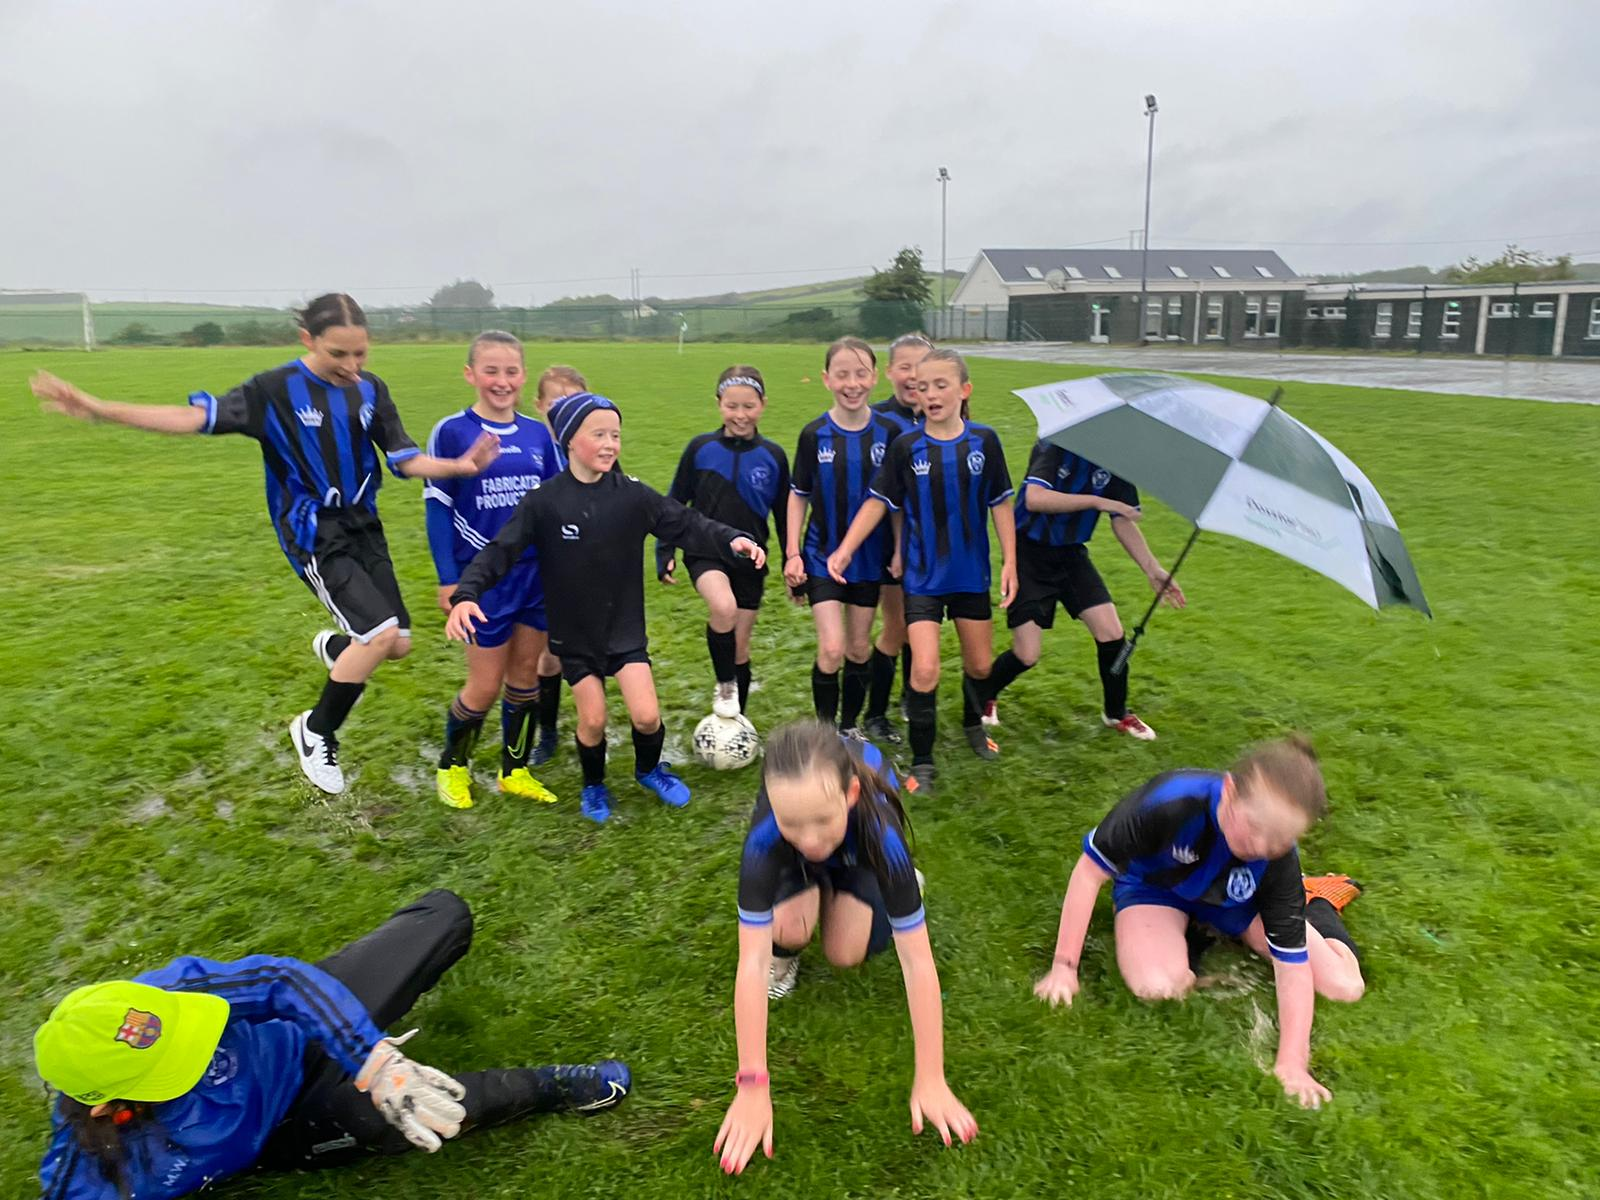 Our Under 12 girls team put up a very entertaining performance in near apocalyptic conditions in against Connolly at Kilmaley NS. There was great determination on show by the girls. We had a young team in comparison to our opponents but matched them fully. While our supporters stayed dry in their cars, our intrepid management and team stayed out together in a monsoon sponsored by generously donated umbrellas from the head of the Drumline primary teachers association.